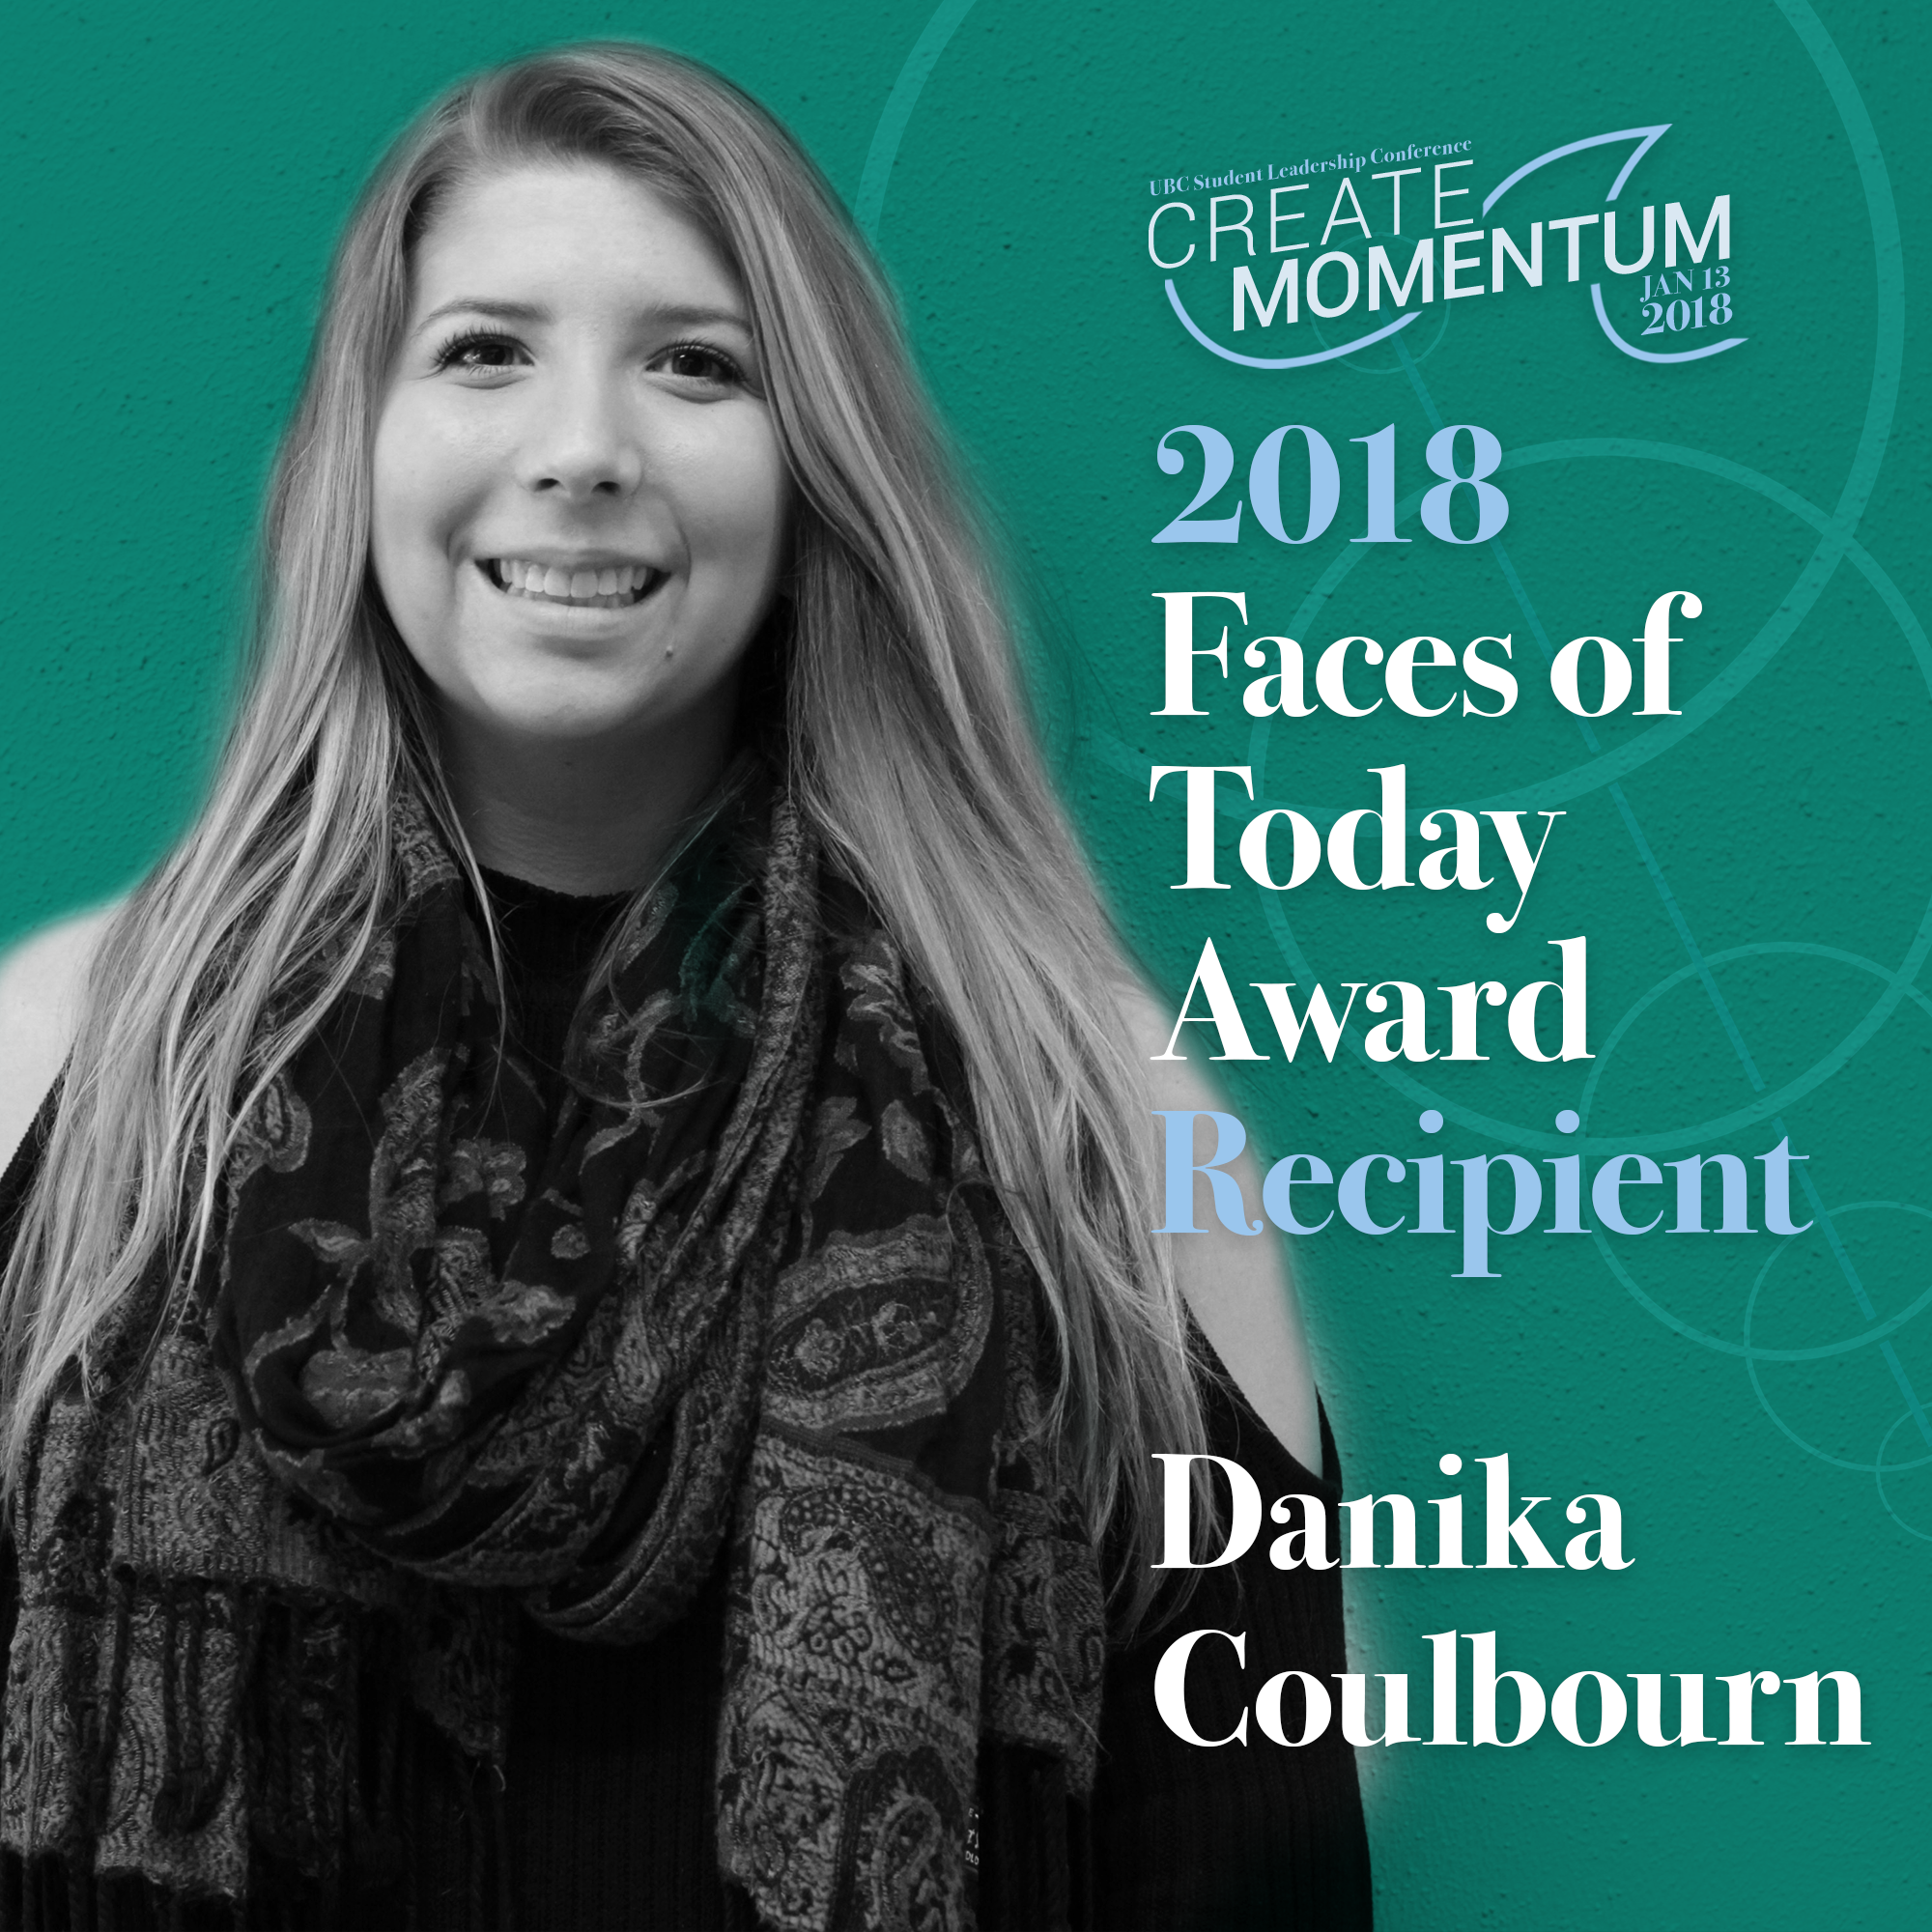 SLC Faces of Today Danika Coulbourn